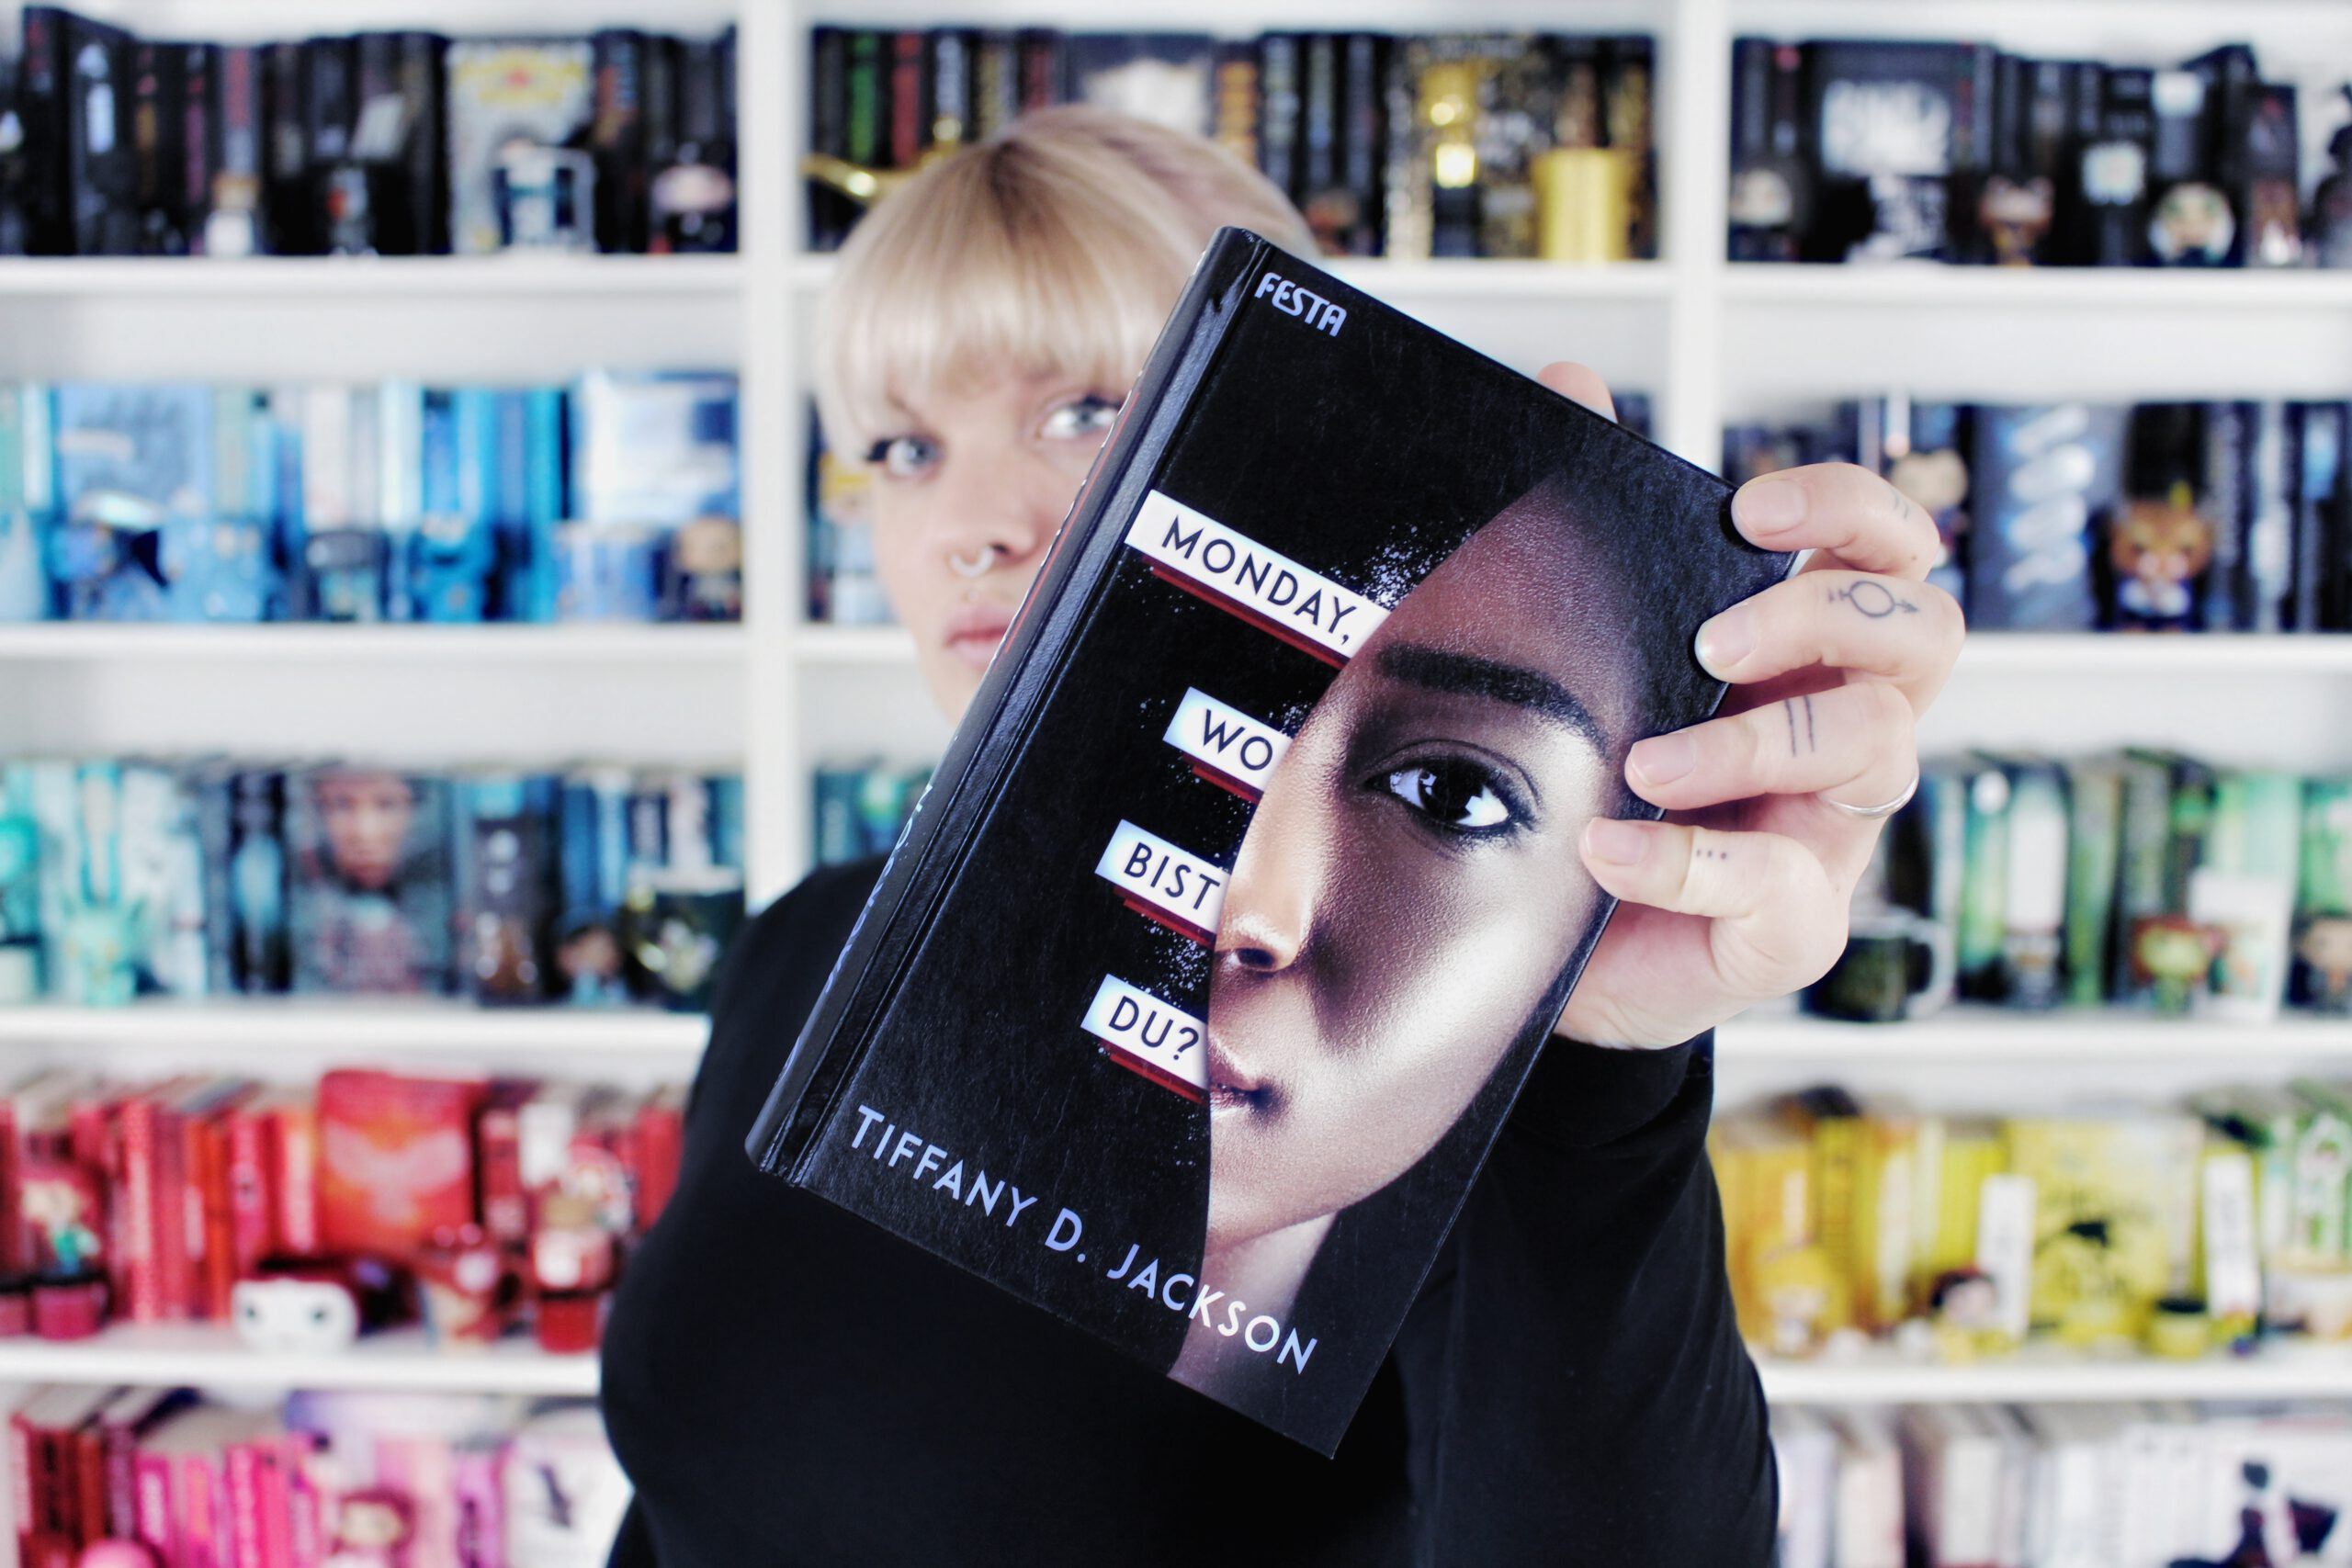 Rezension | Monday, wo bist du? von Tiffany D. Jackson